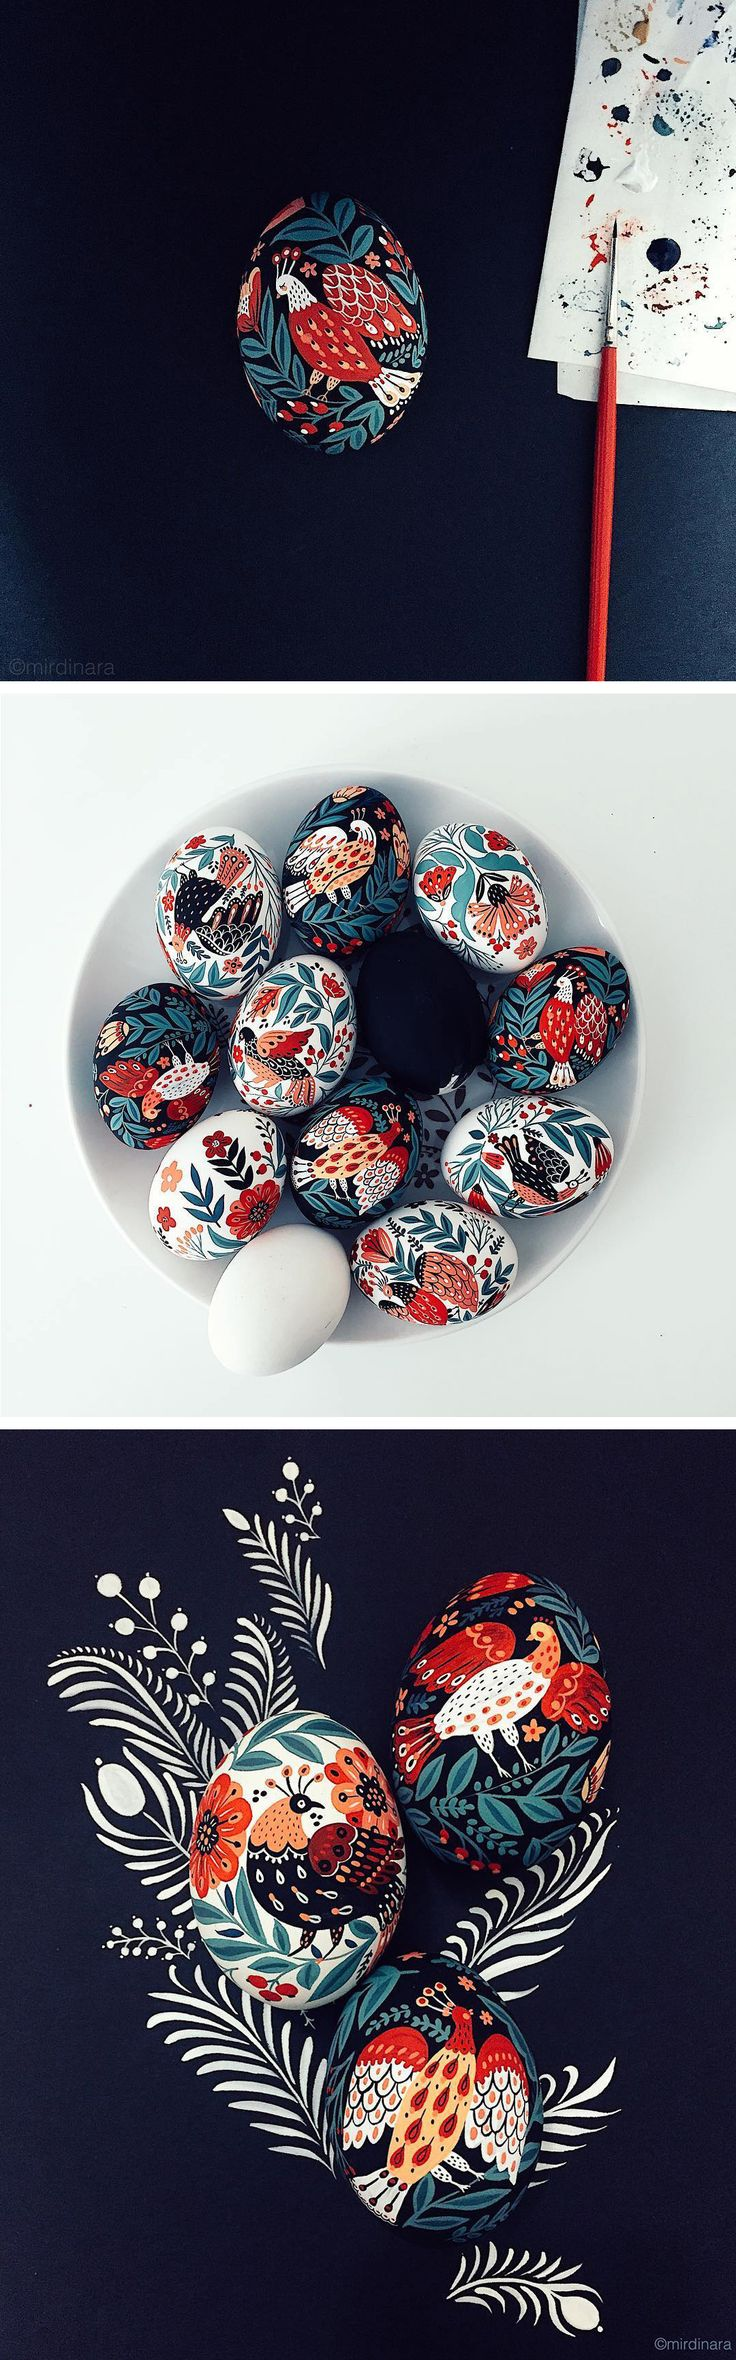 painted eggs by Dinara Mirtalipova | Easter egg | folk-inspired illustration | folk-inspired art